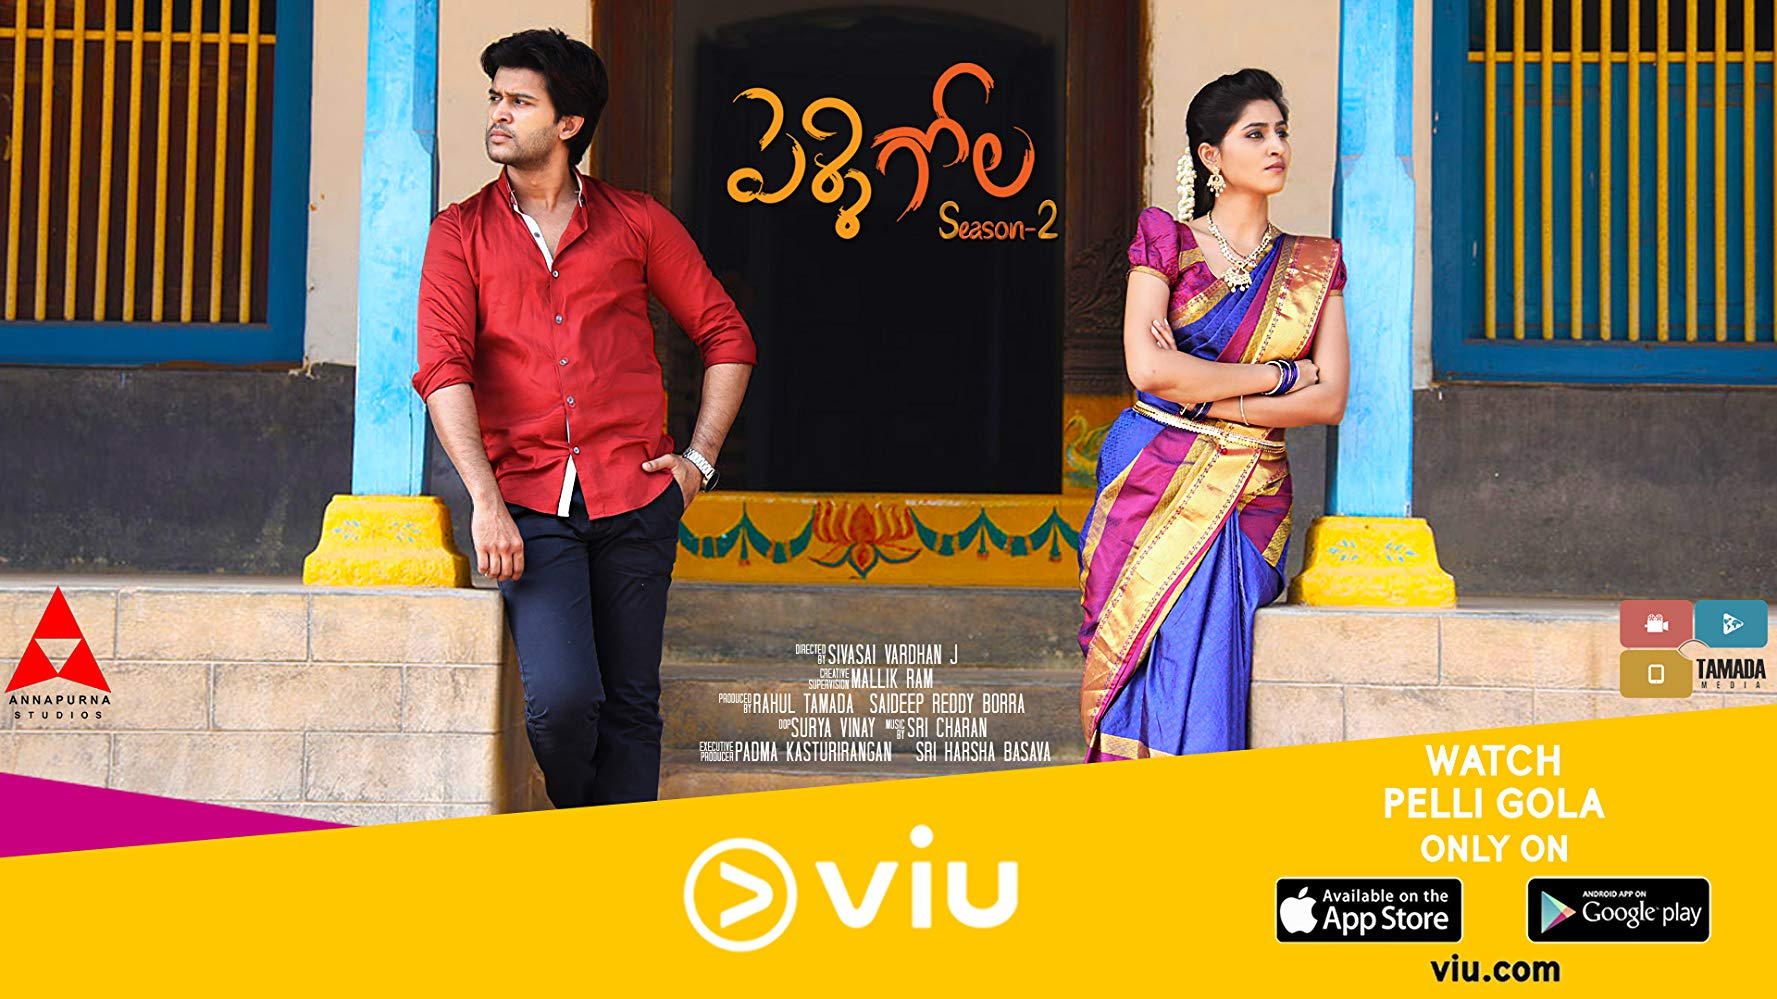 Pelli Gola- Enjoy the Quirky Marriage Story By Mallik Ram On VIU